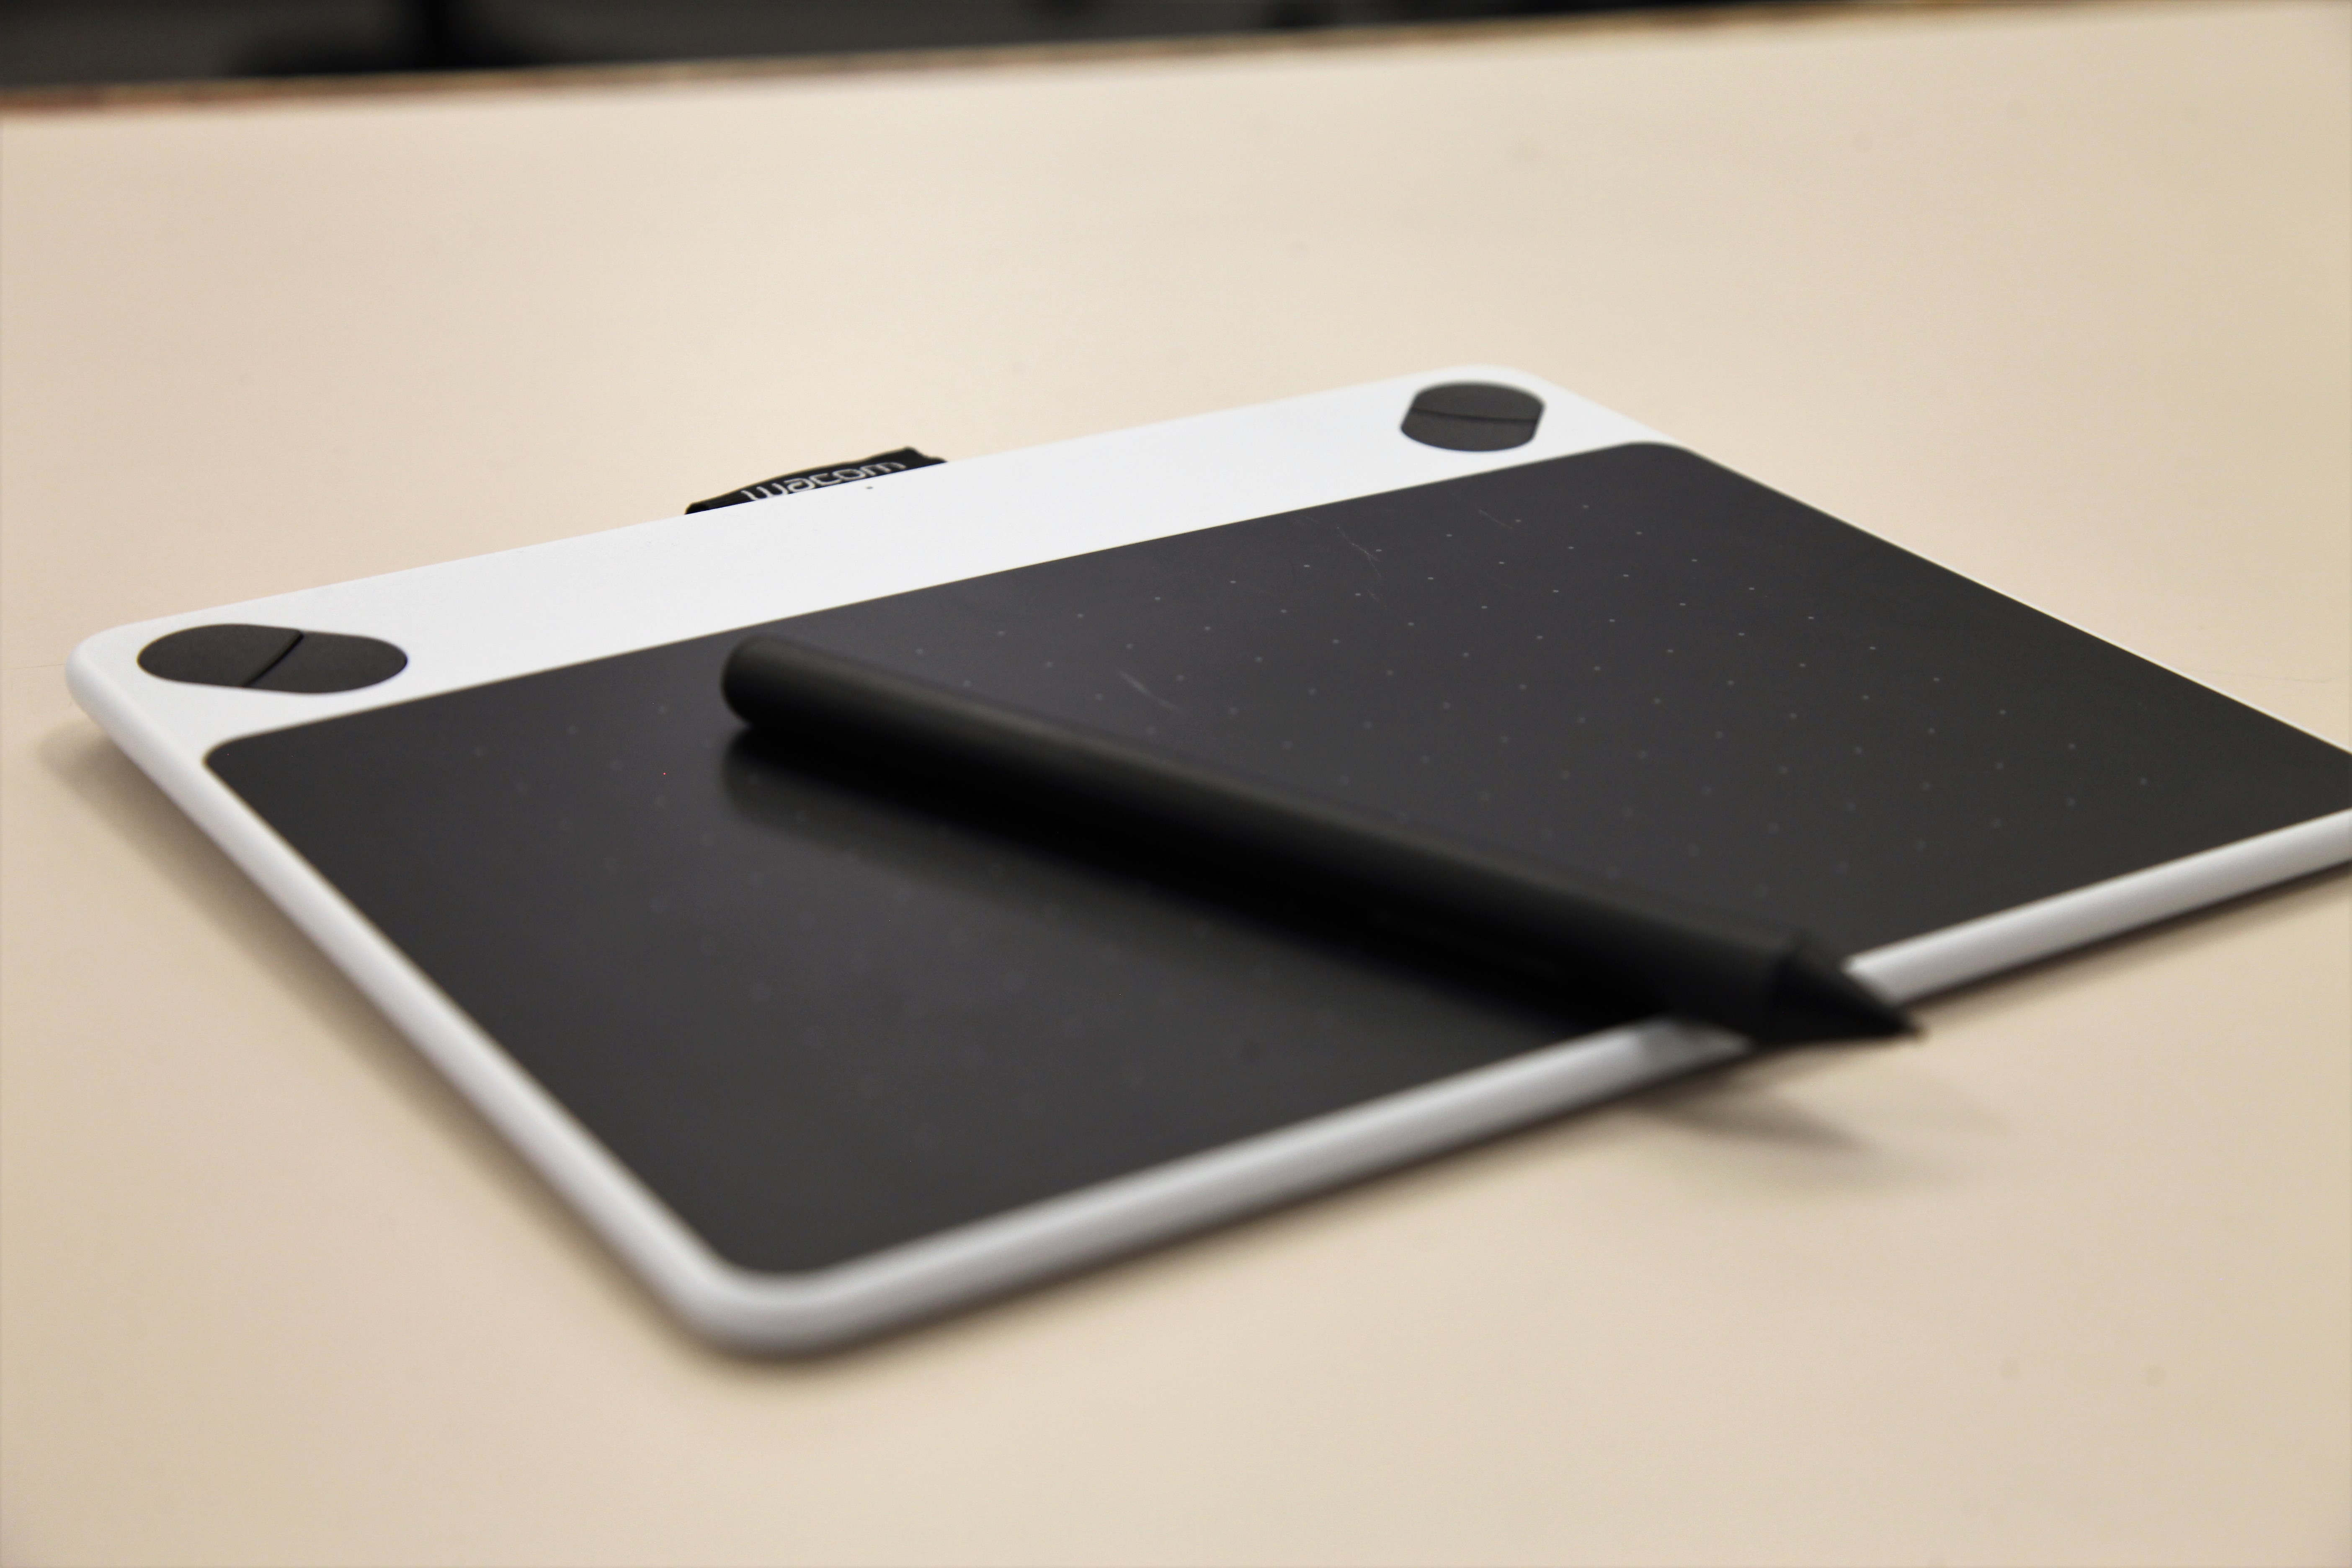 A Wacom Drawing Tablet and a stylus on a counter